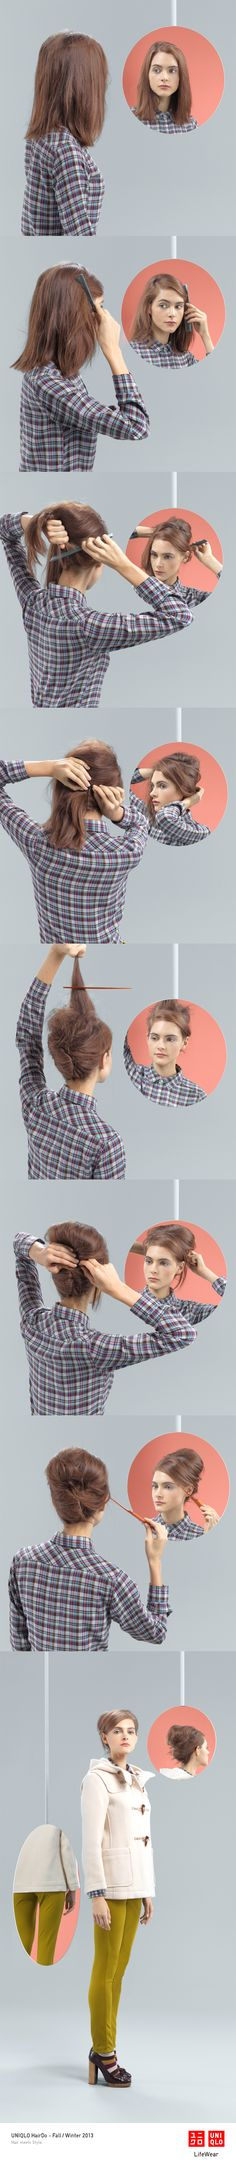 """THE SIDE BEEHIVE"" : A cotton flannel shirt works well with this modern take on a classic hair style. Click on the image for DIY instructions! #UpDo #Hair #Hairstyle #DIY #UNIQLO #HairDo"